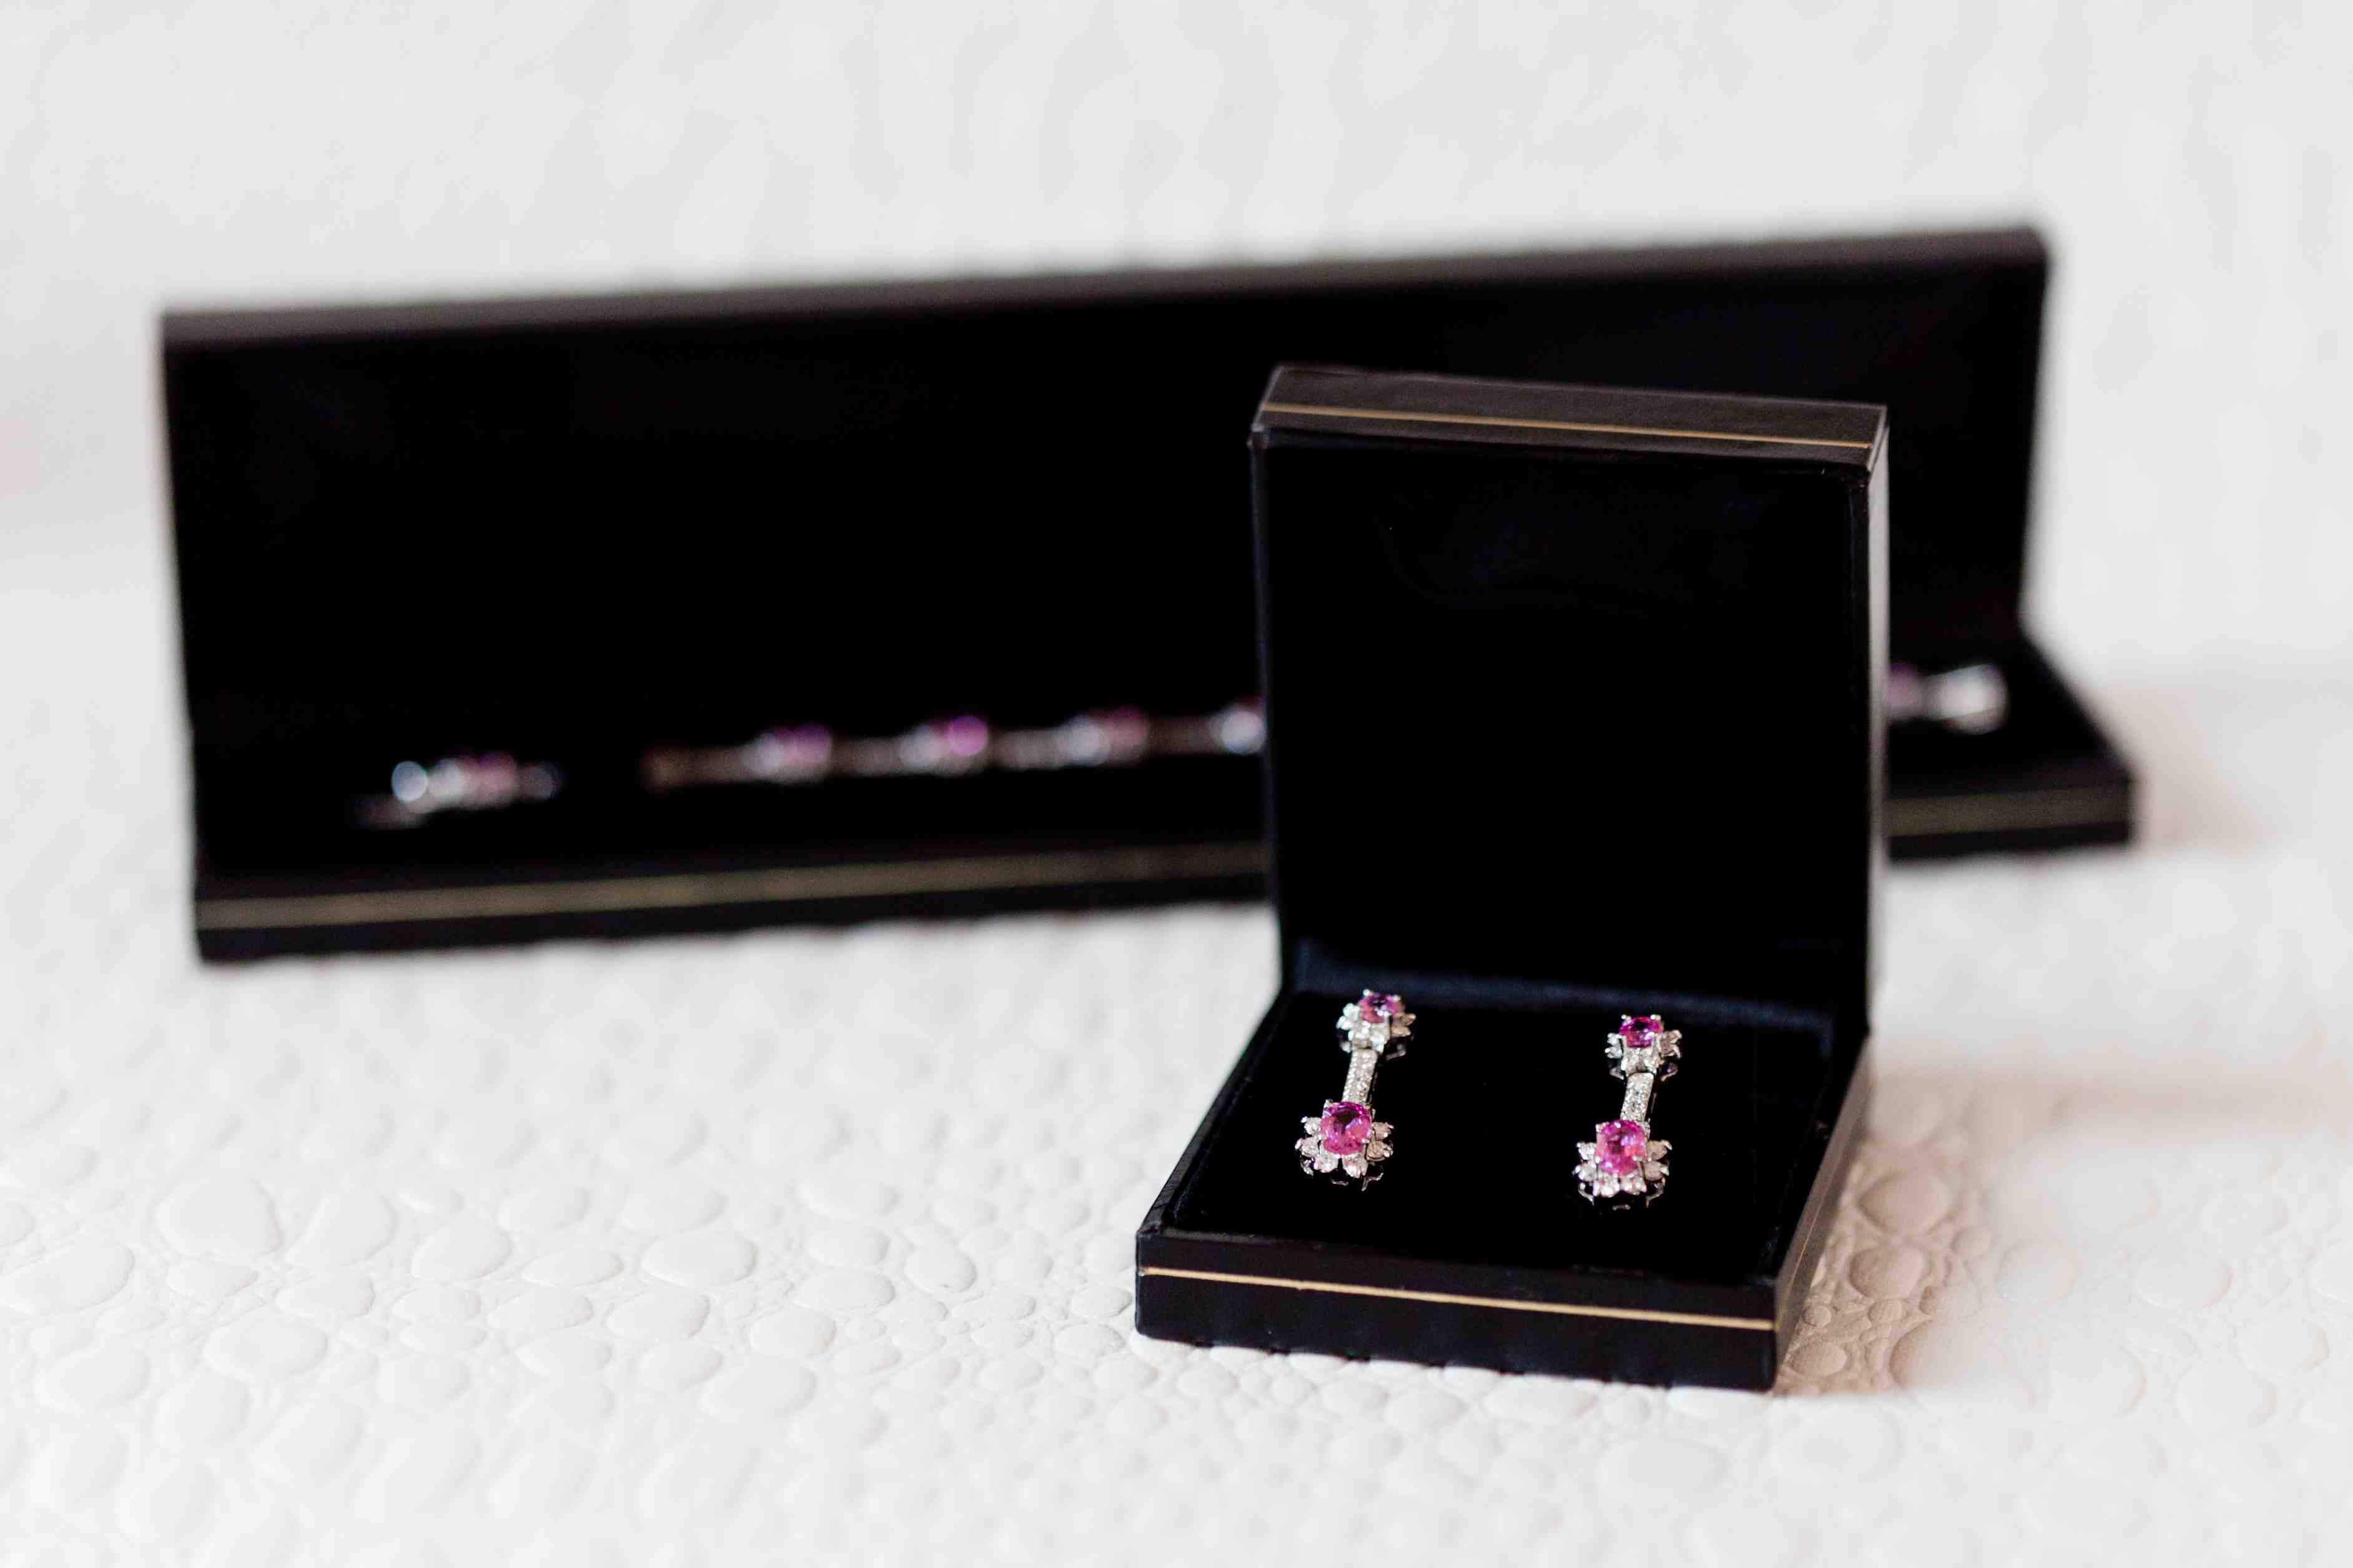 Hot pink earrings and necklace for wedding